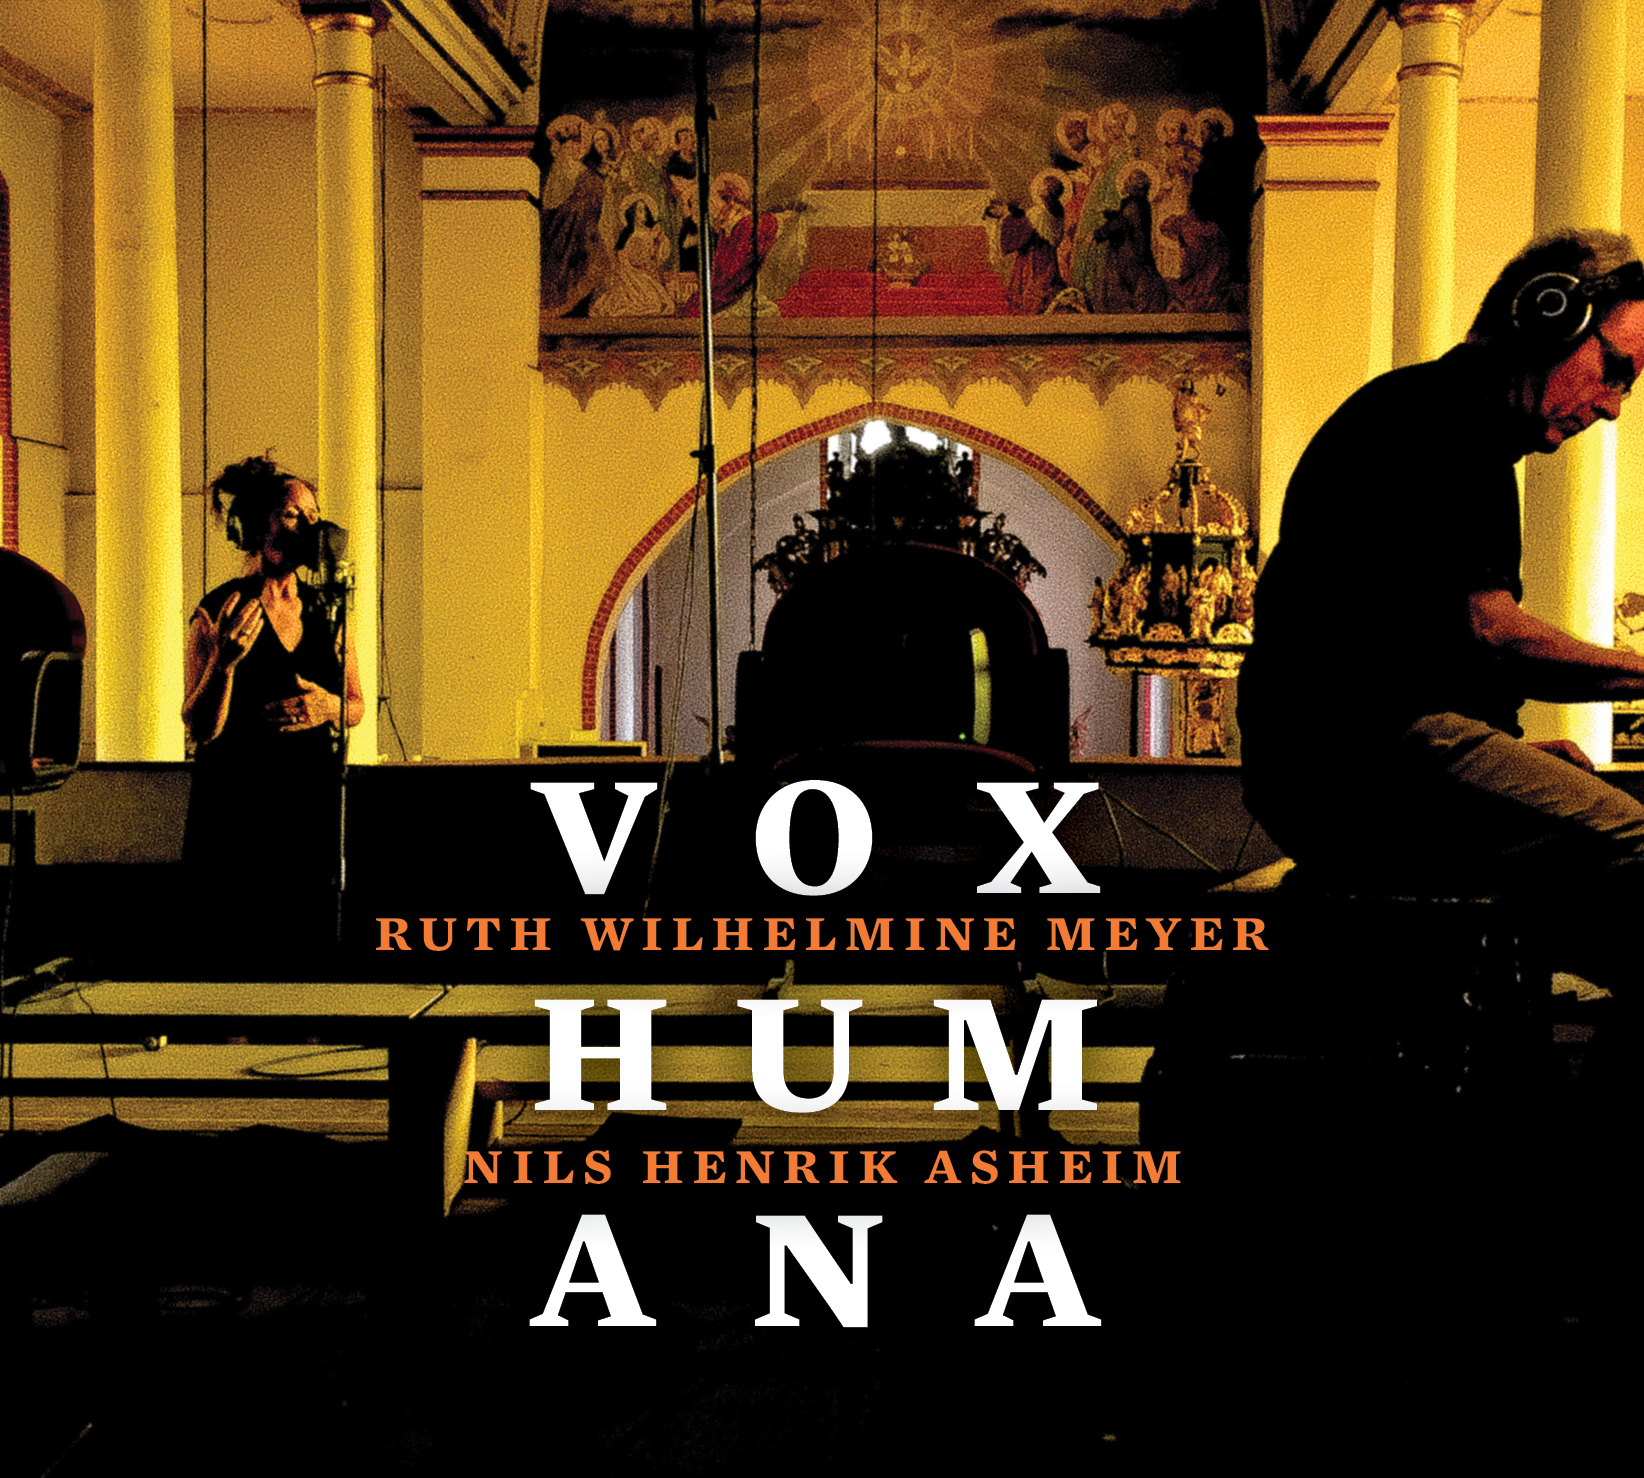 Coverforside Vox Humana